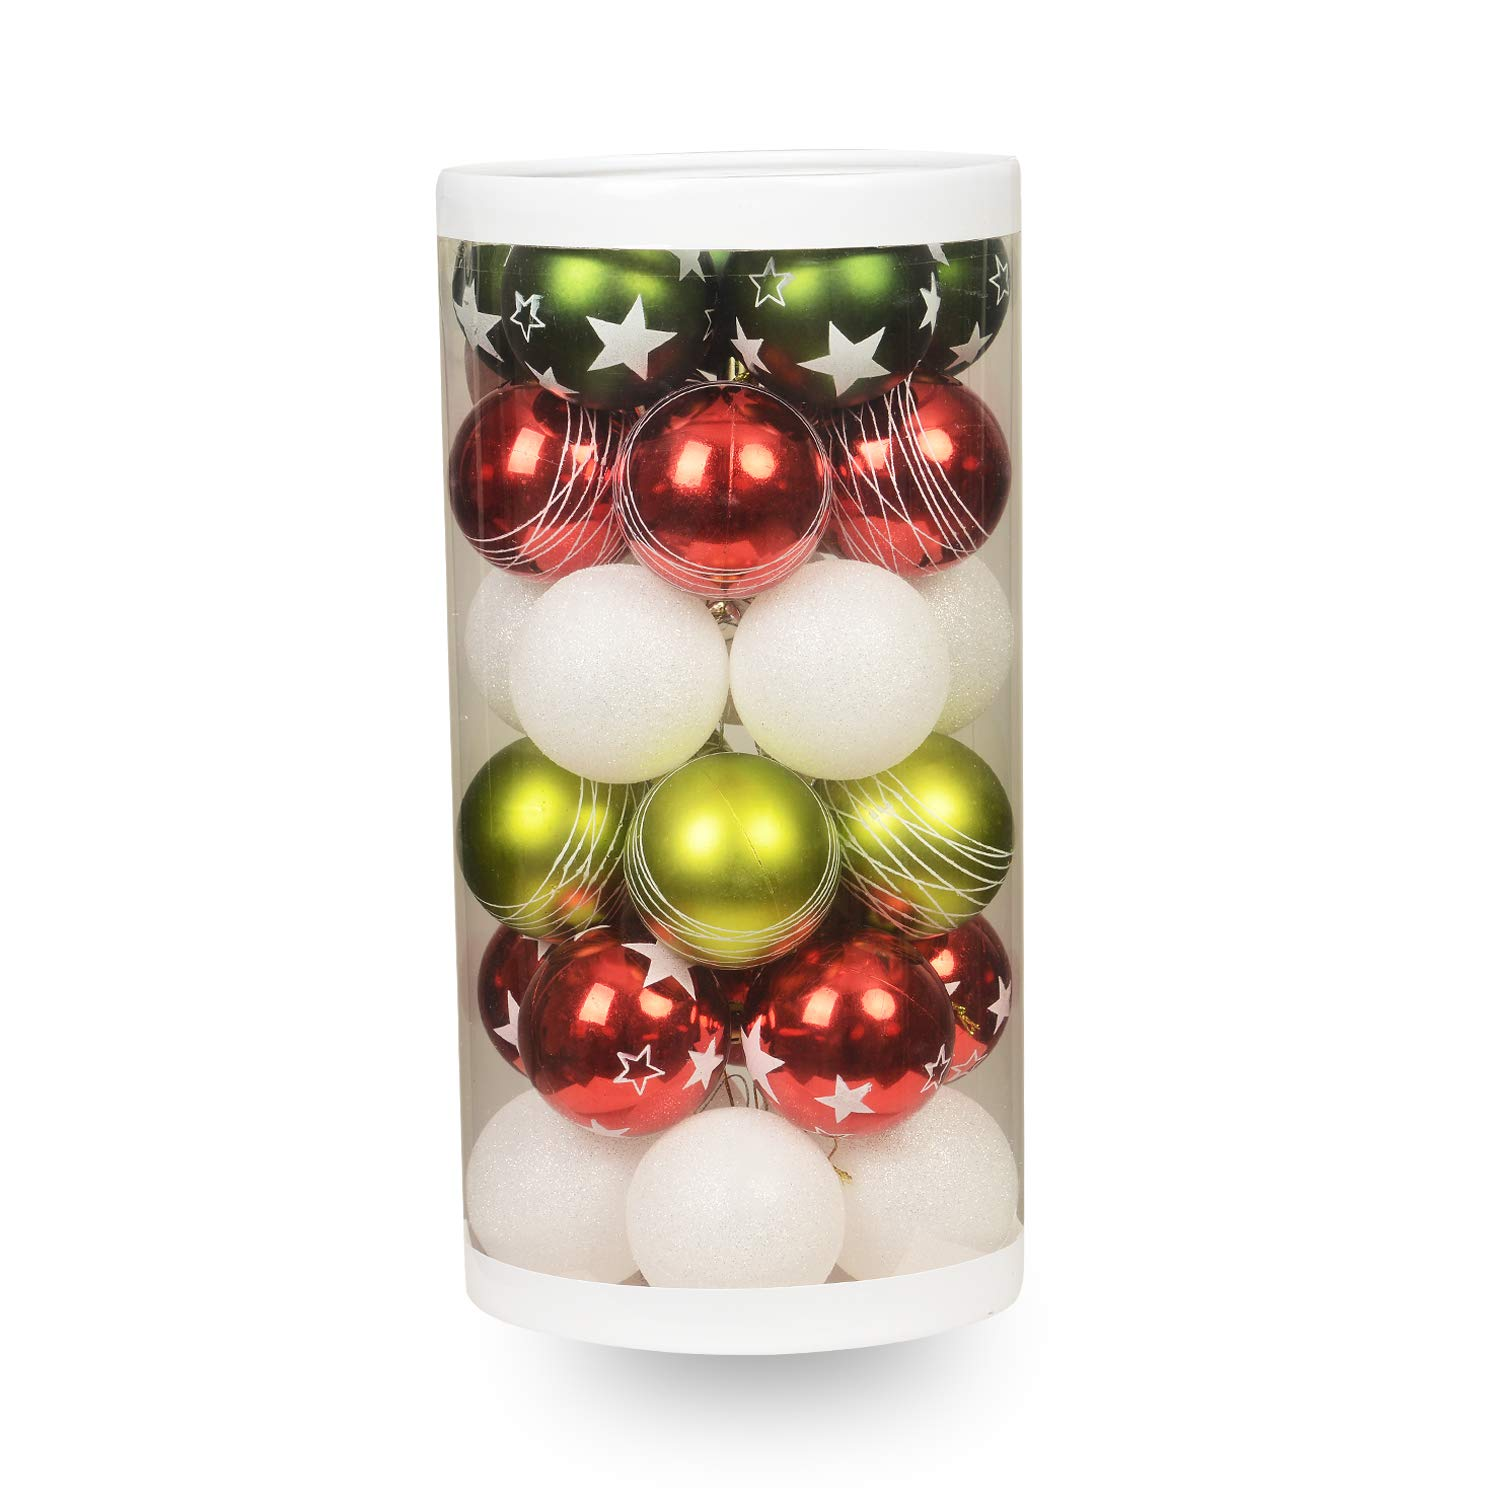 """ChristmasEXP 30ct 60mm/2.36"""" Christmas Ball Ornaments Shatterproof Christmas Decorations Tree Balls with Delicate Red&Green Combination Christmas Tree Ornaments (30 Pack)"""